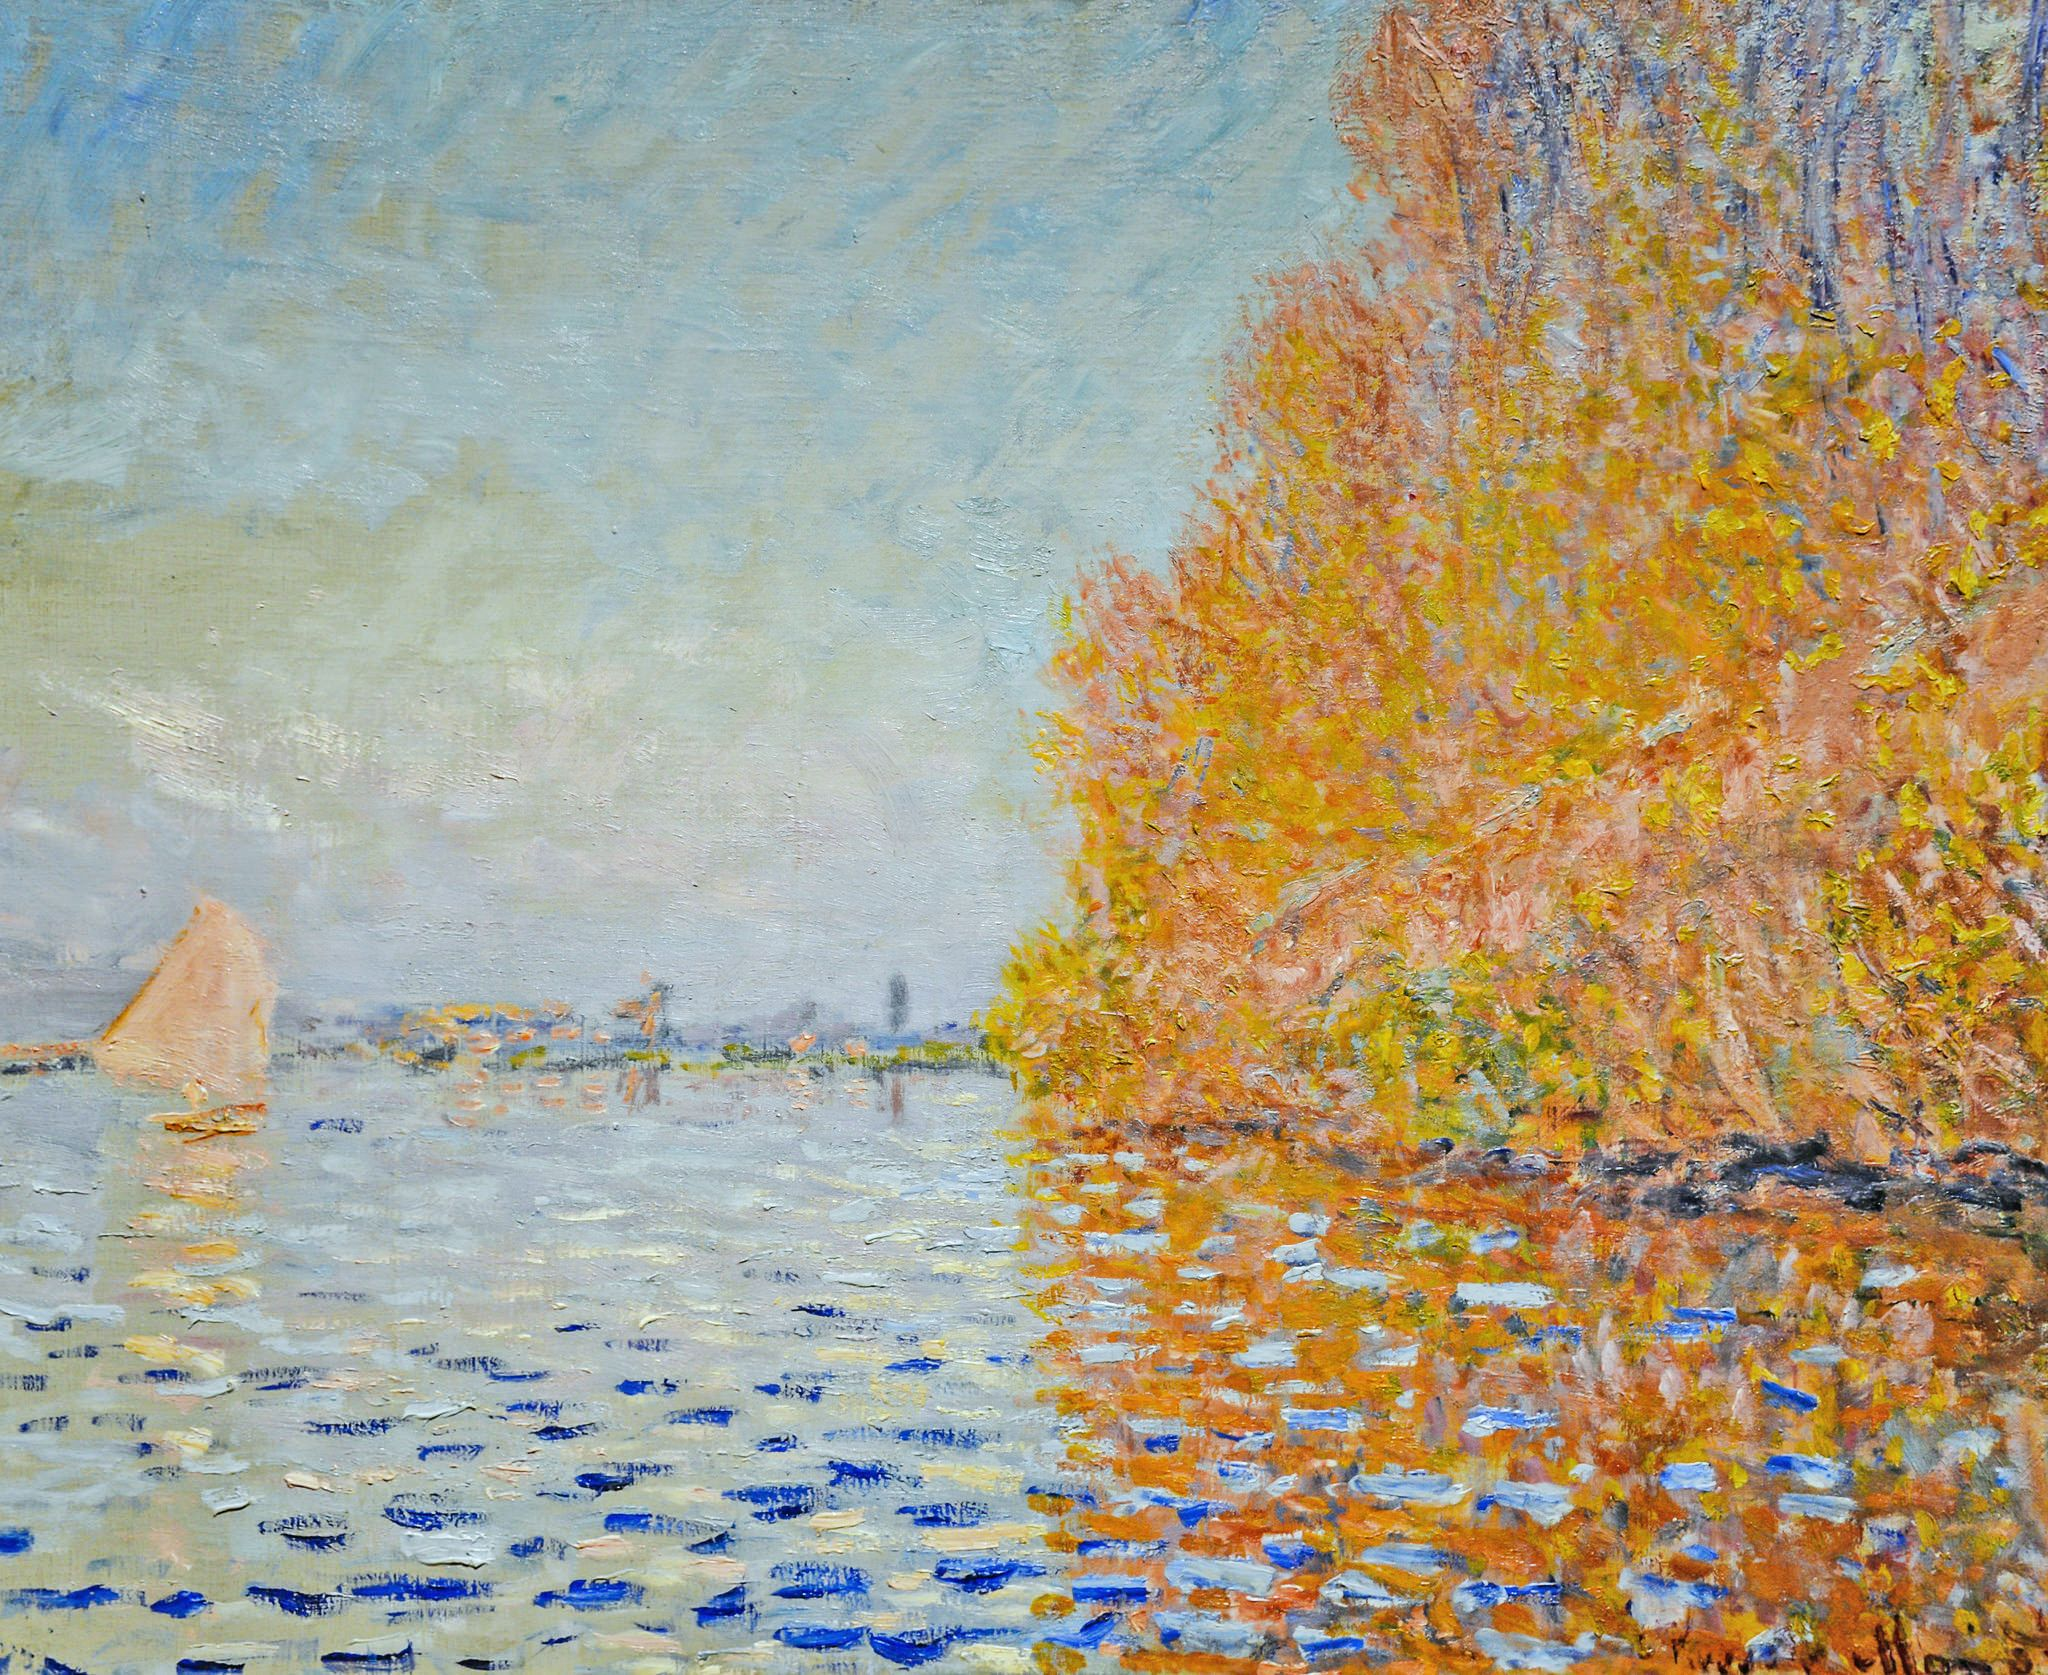 W 331 Claude Monet Argenteuil Basin With A Single Sailboat 1874